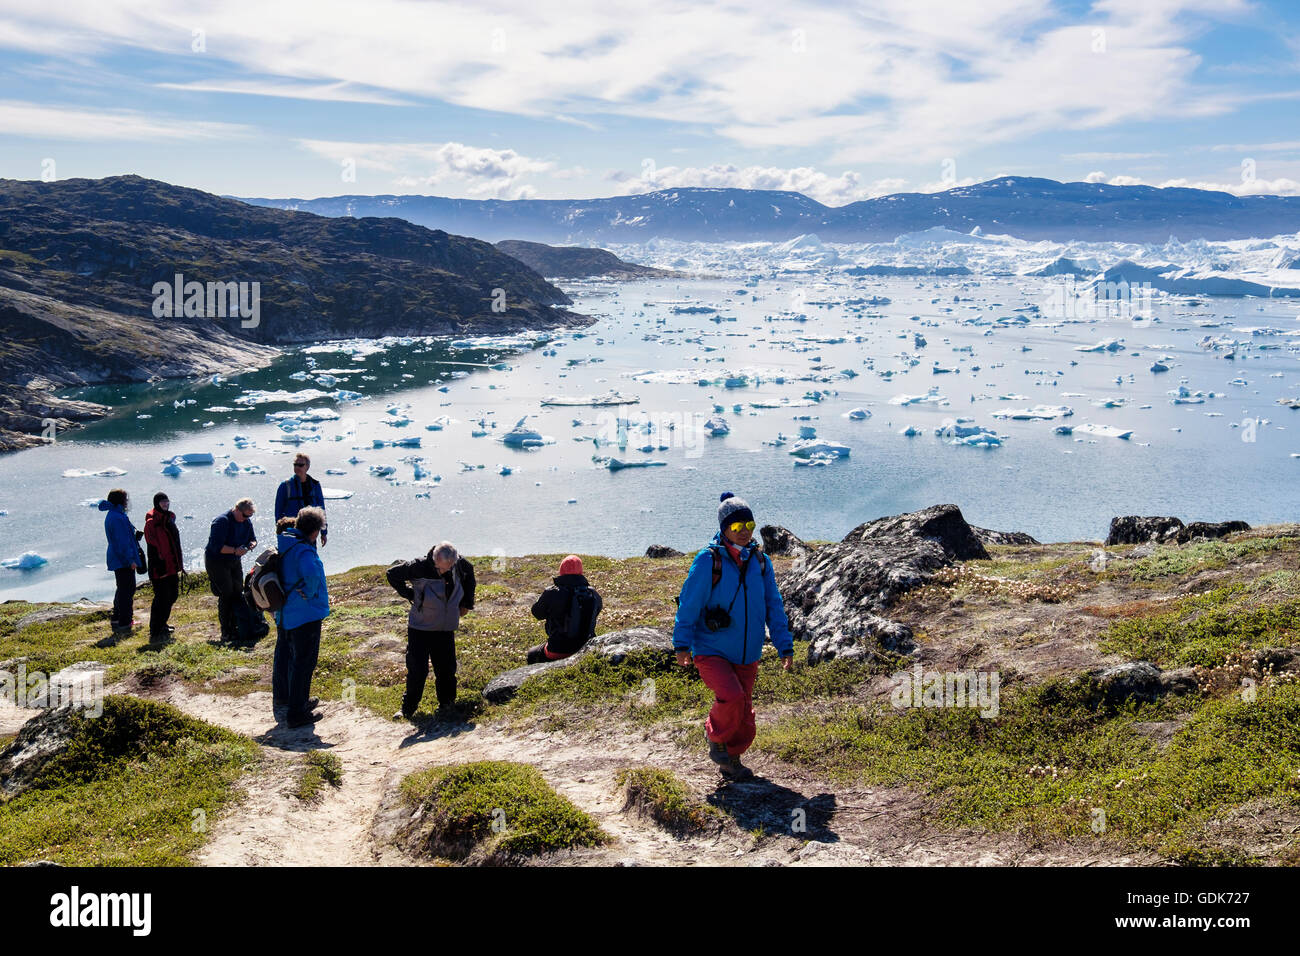 Hikers hiking on blue hike trail path by Jakobshavn or Ilulissat Icefjord with large icebergs in fjord in arctic - Stock Image